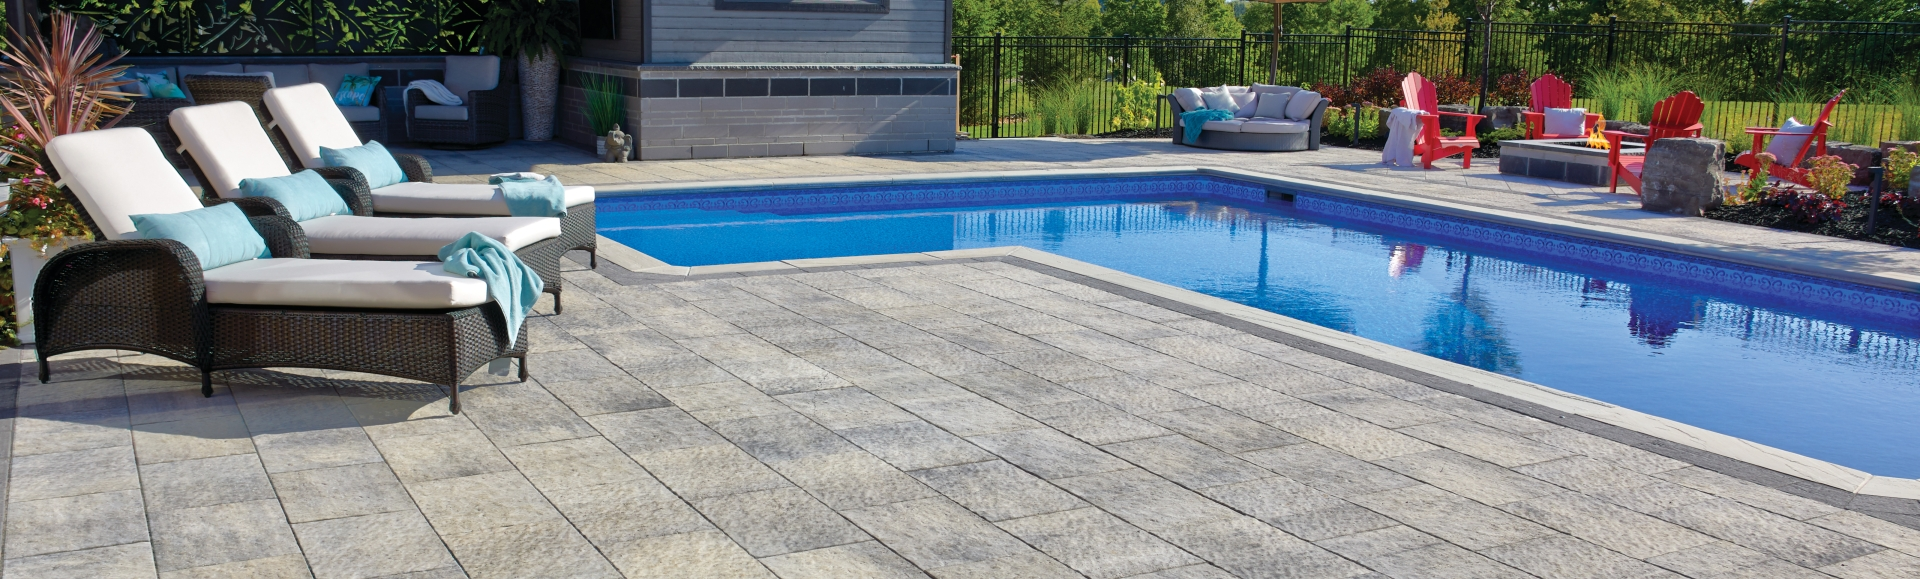 Patio with pool using Rialto and Monterey products from Brampton Brick